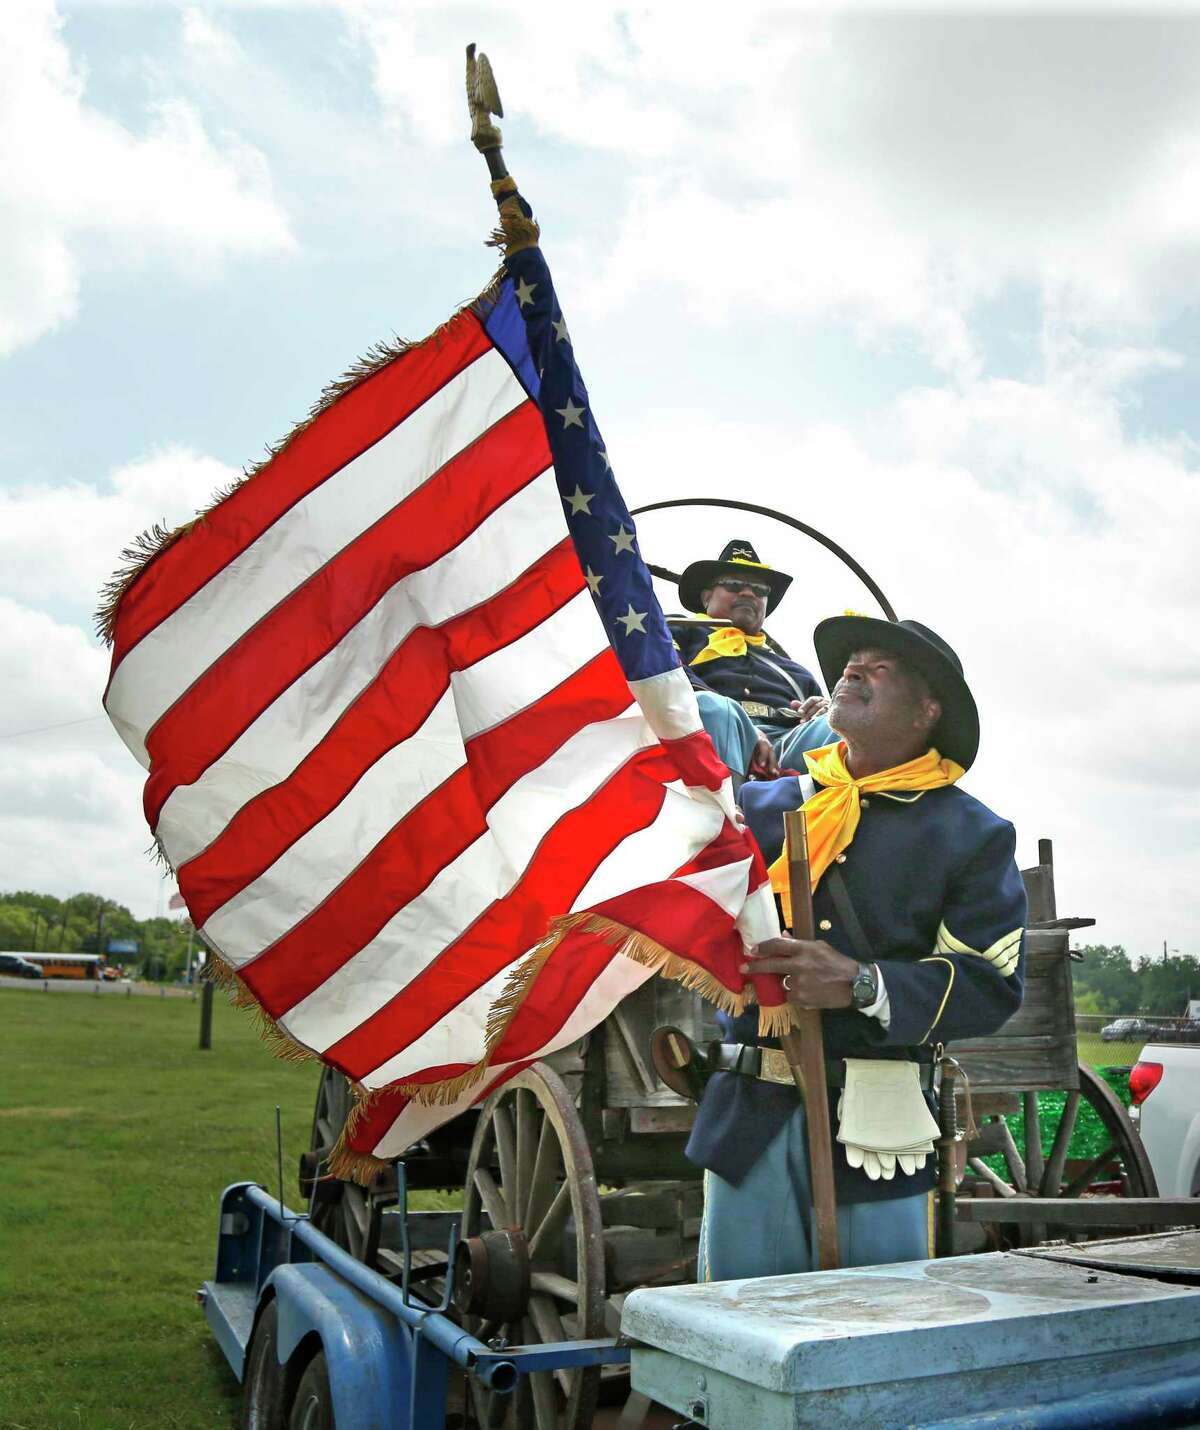 Trooper Jerry Cheaton folds the flag after he and the Buffalo Soldiers marched in the parade to Comanche Park during the 2019 Texas Freedom Festival.